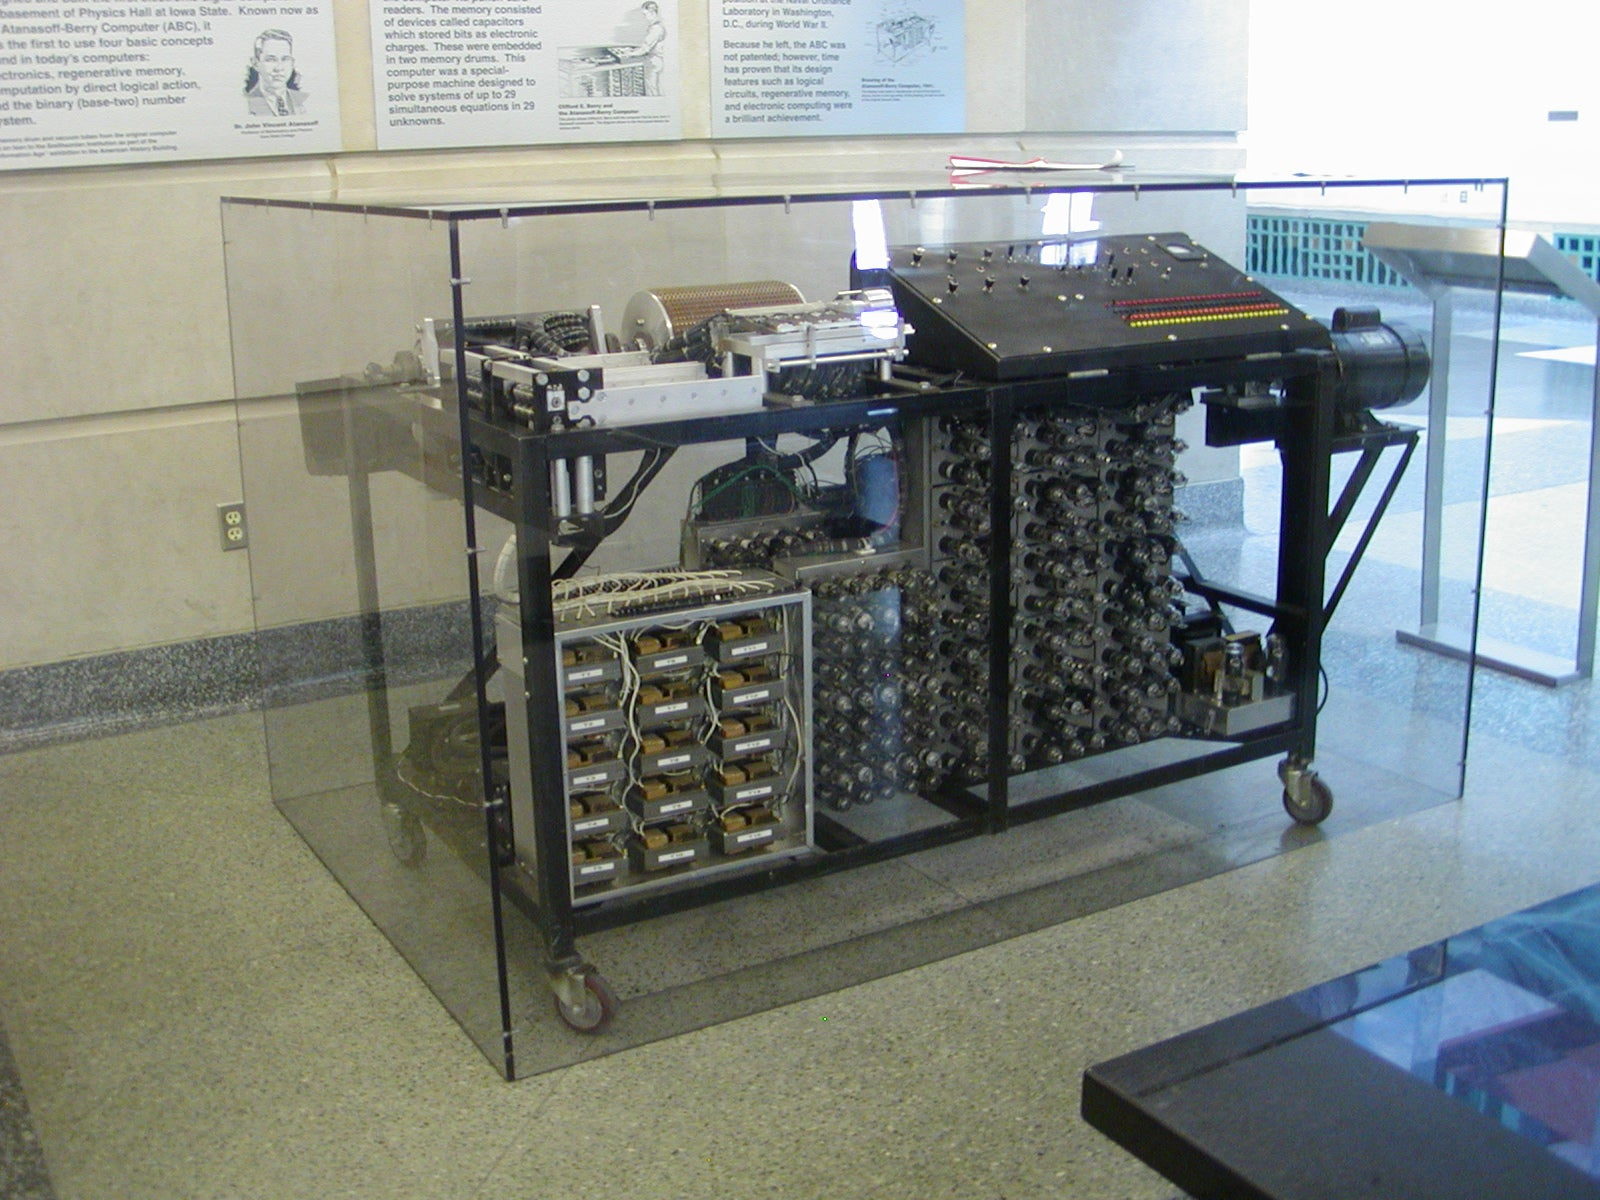 The Atanasoff-Berry Computer at Durham Center, Iowa State University (CC-licensed image by Manop http://commons.wikimedia.org/wiki/User:Manop)